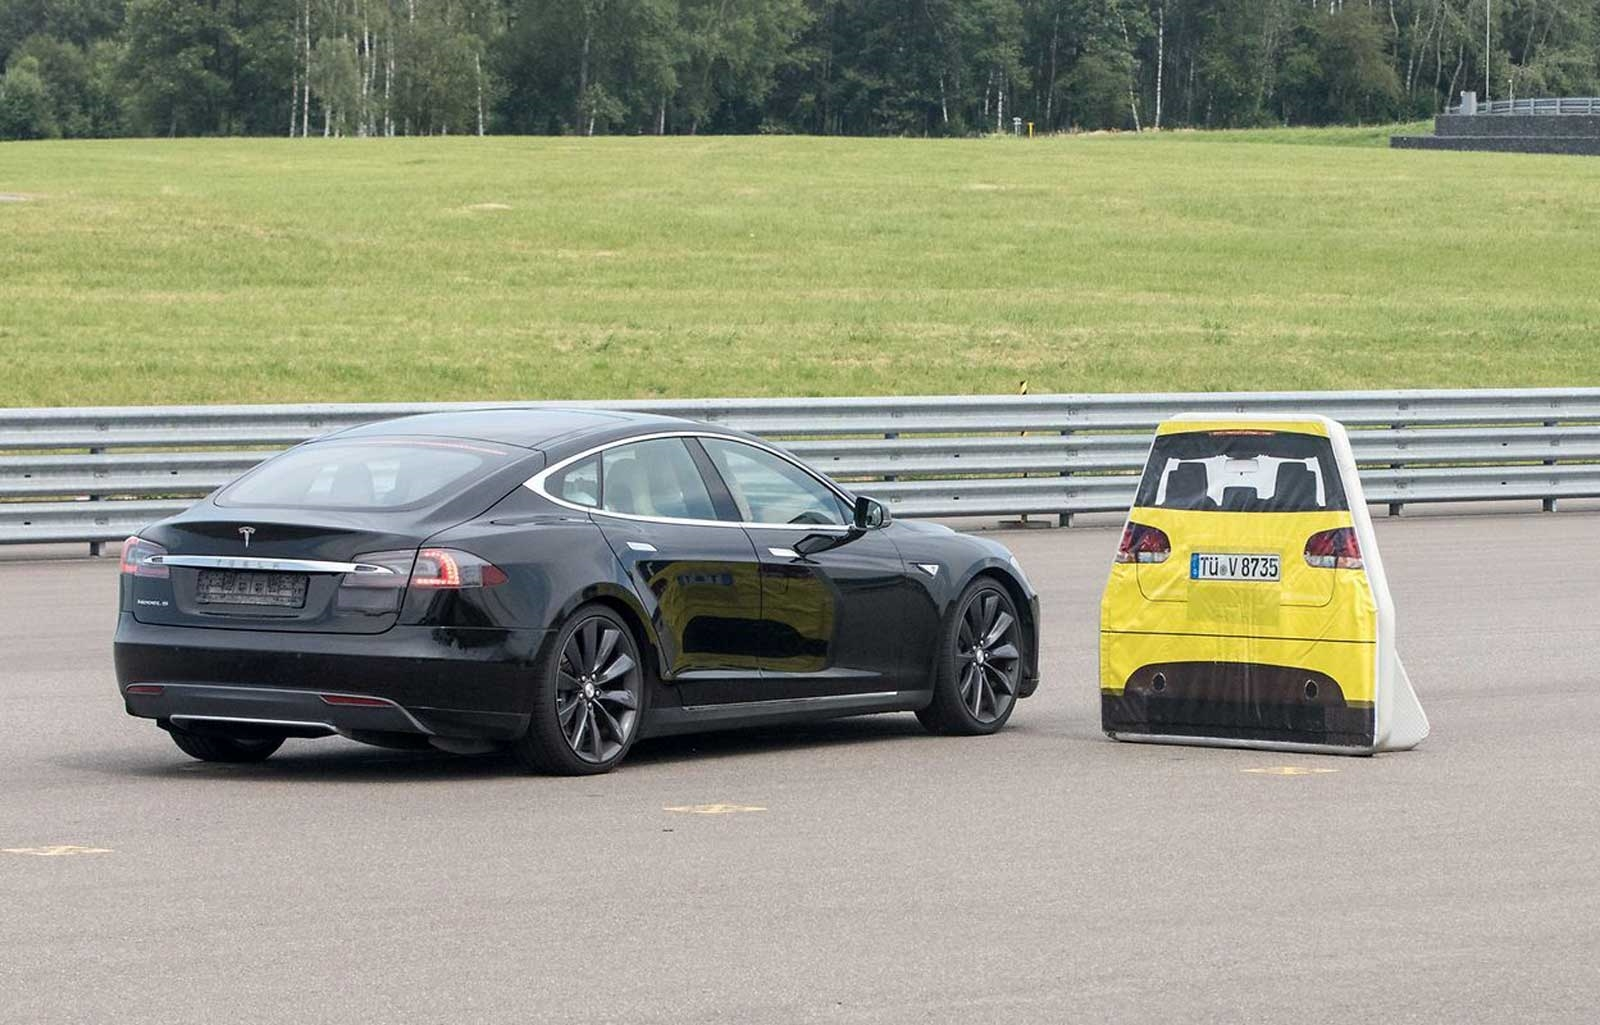 Tesla and Luxembourg squabble over failed Model S braking test | DeviceDaily.com